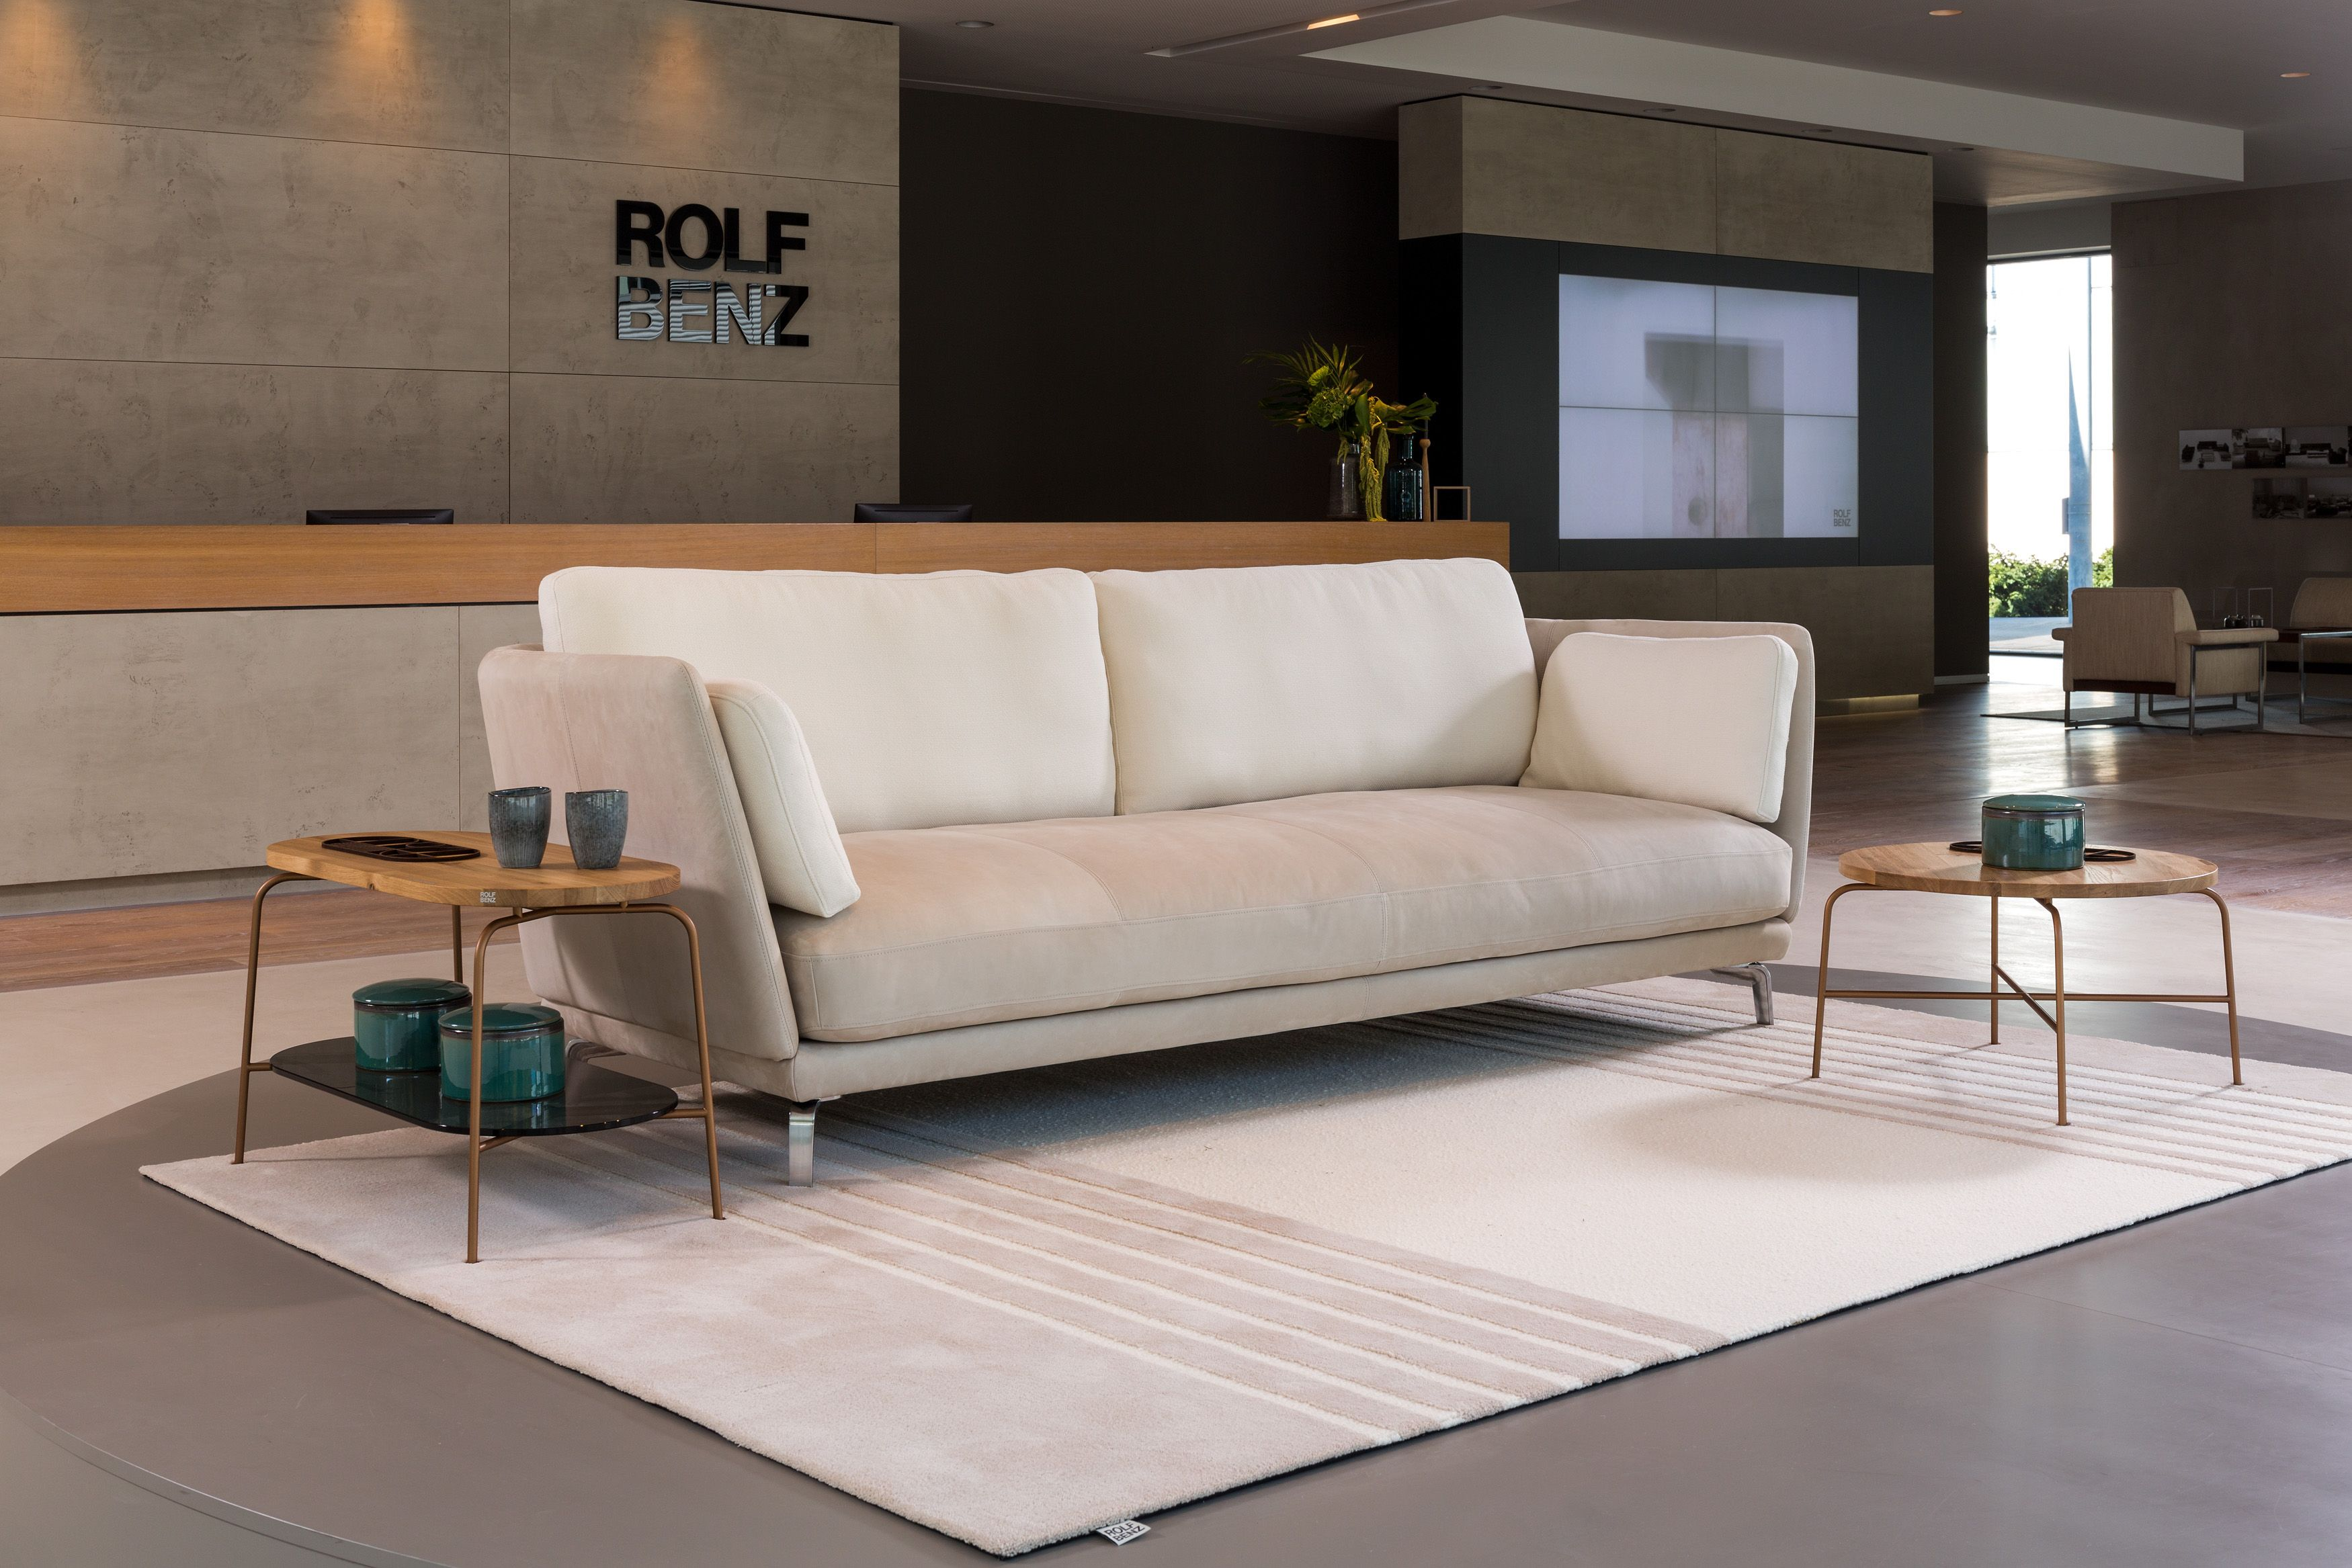 Couchtisch 985 Rolf Benz The Rolf Benz Rondo Sofa Lounging With Style And Elegance In Any